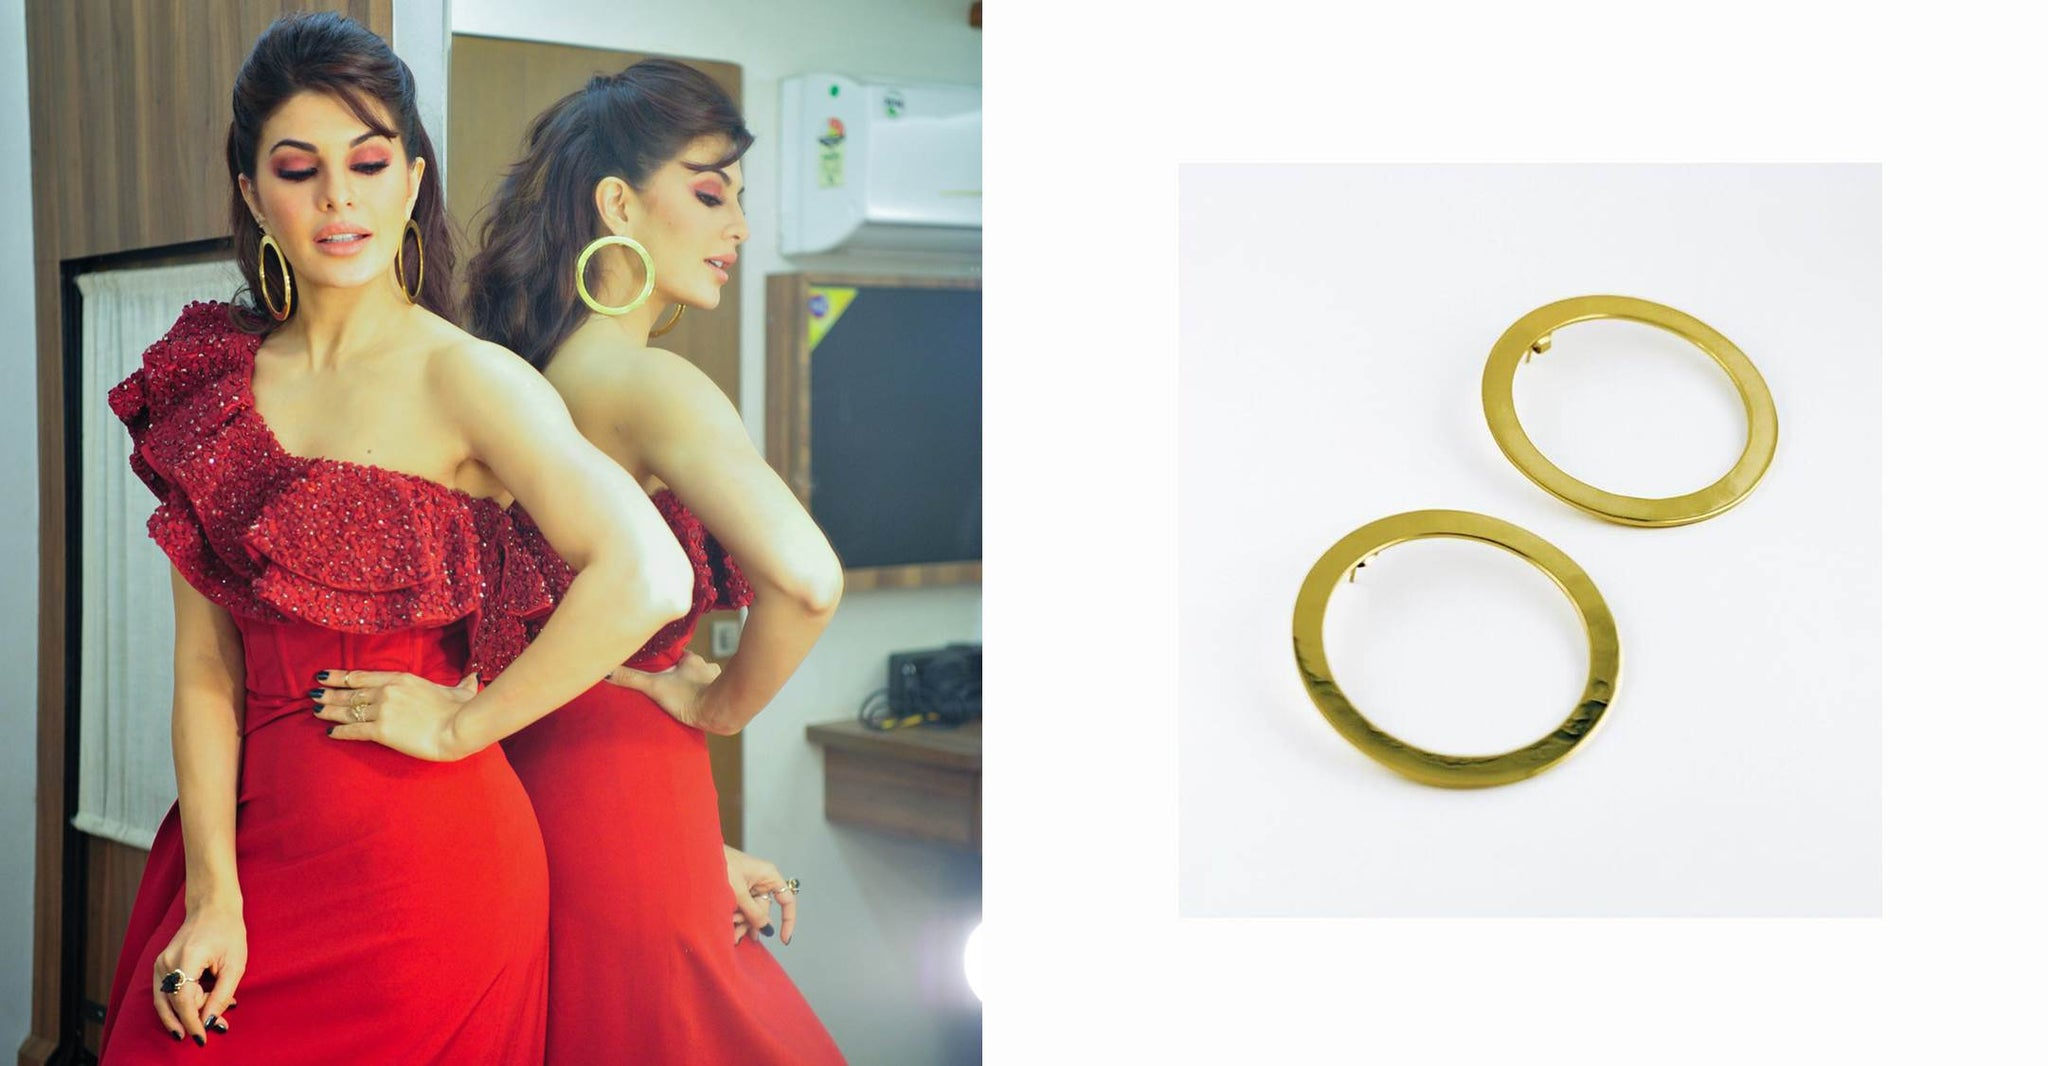 Sonakshi Raaj's ONE SHOULDER Red Gown